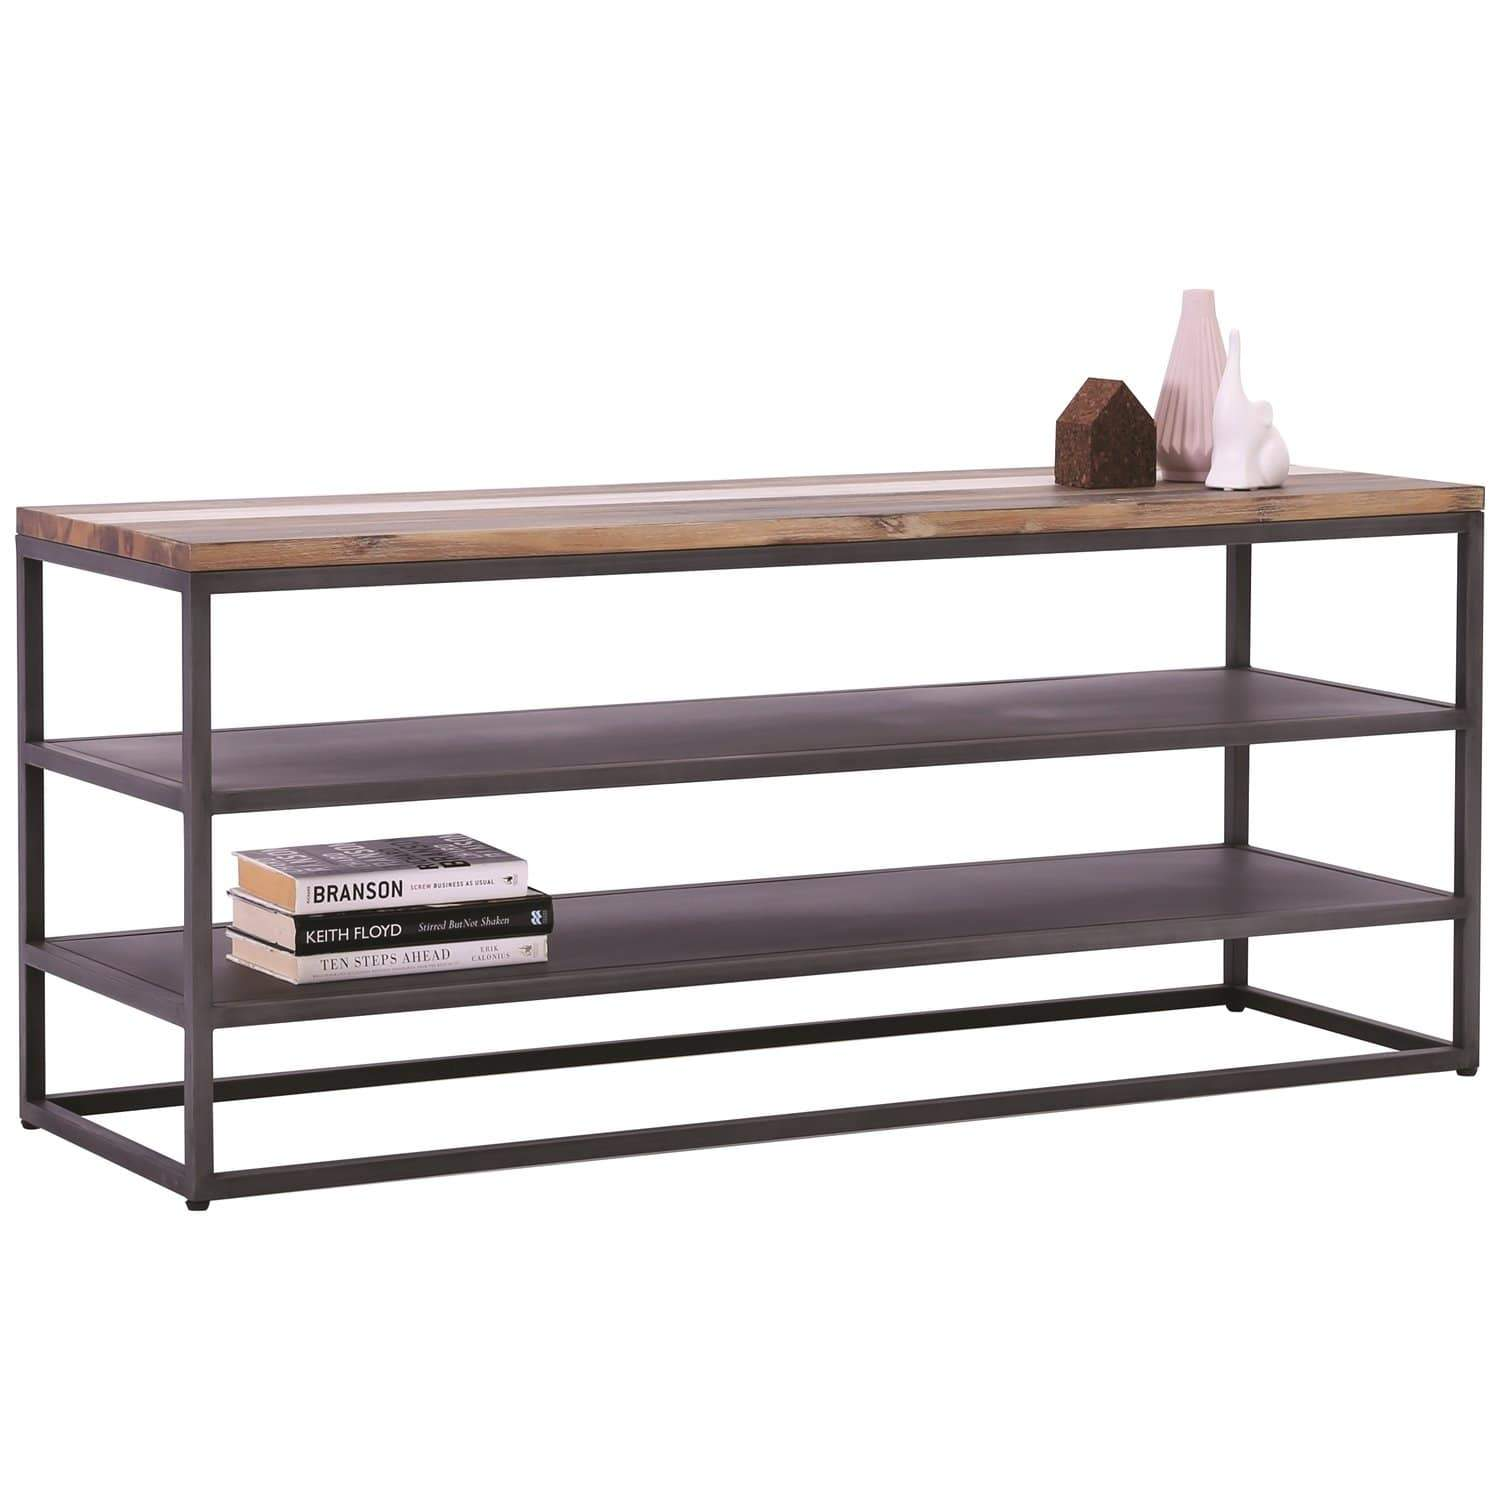 mfdesign88 Dachi TV Stand With Grey Anthracite Frame